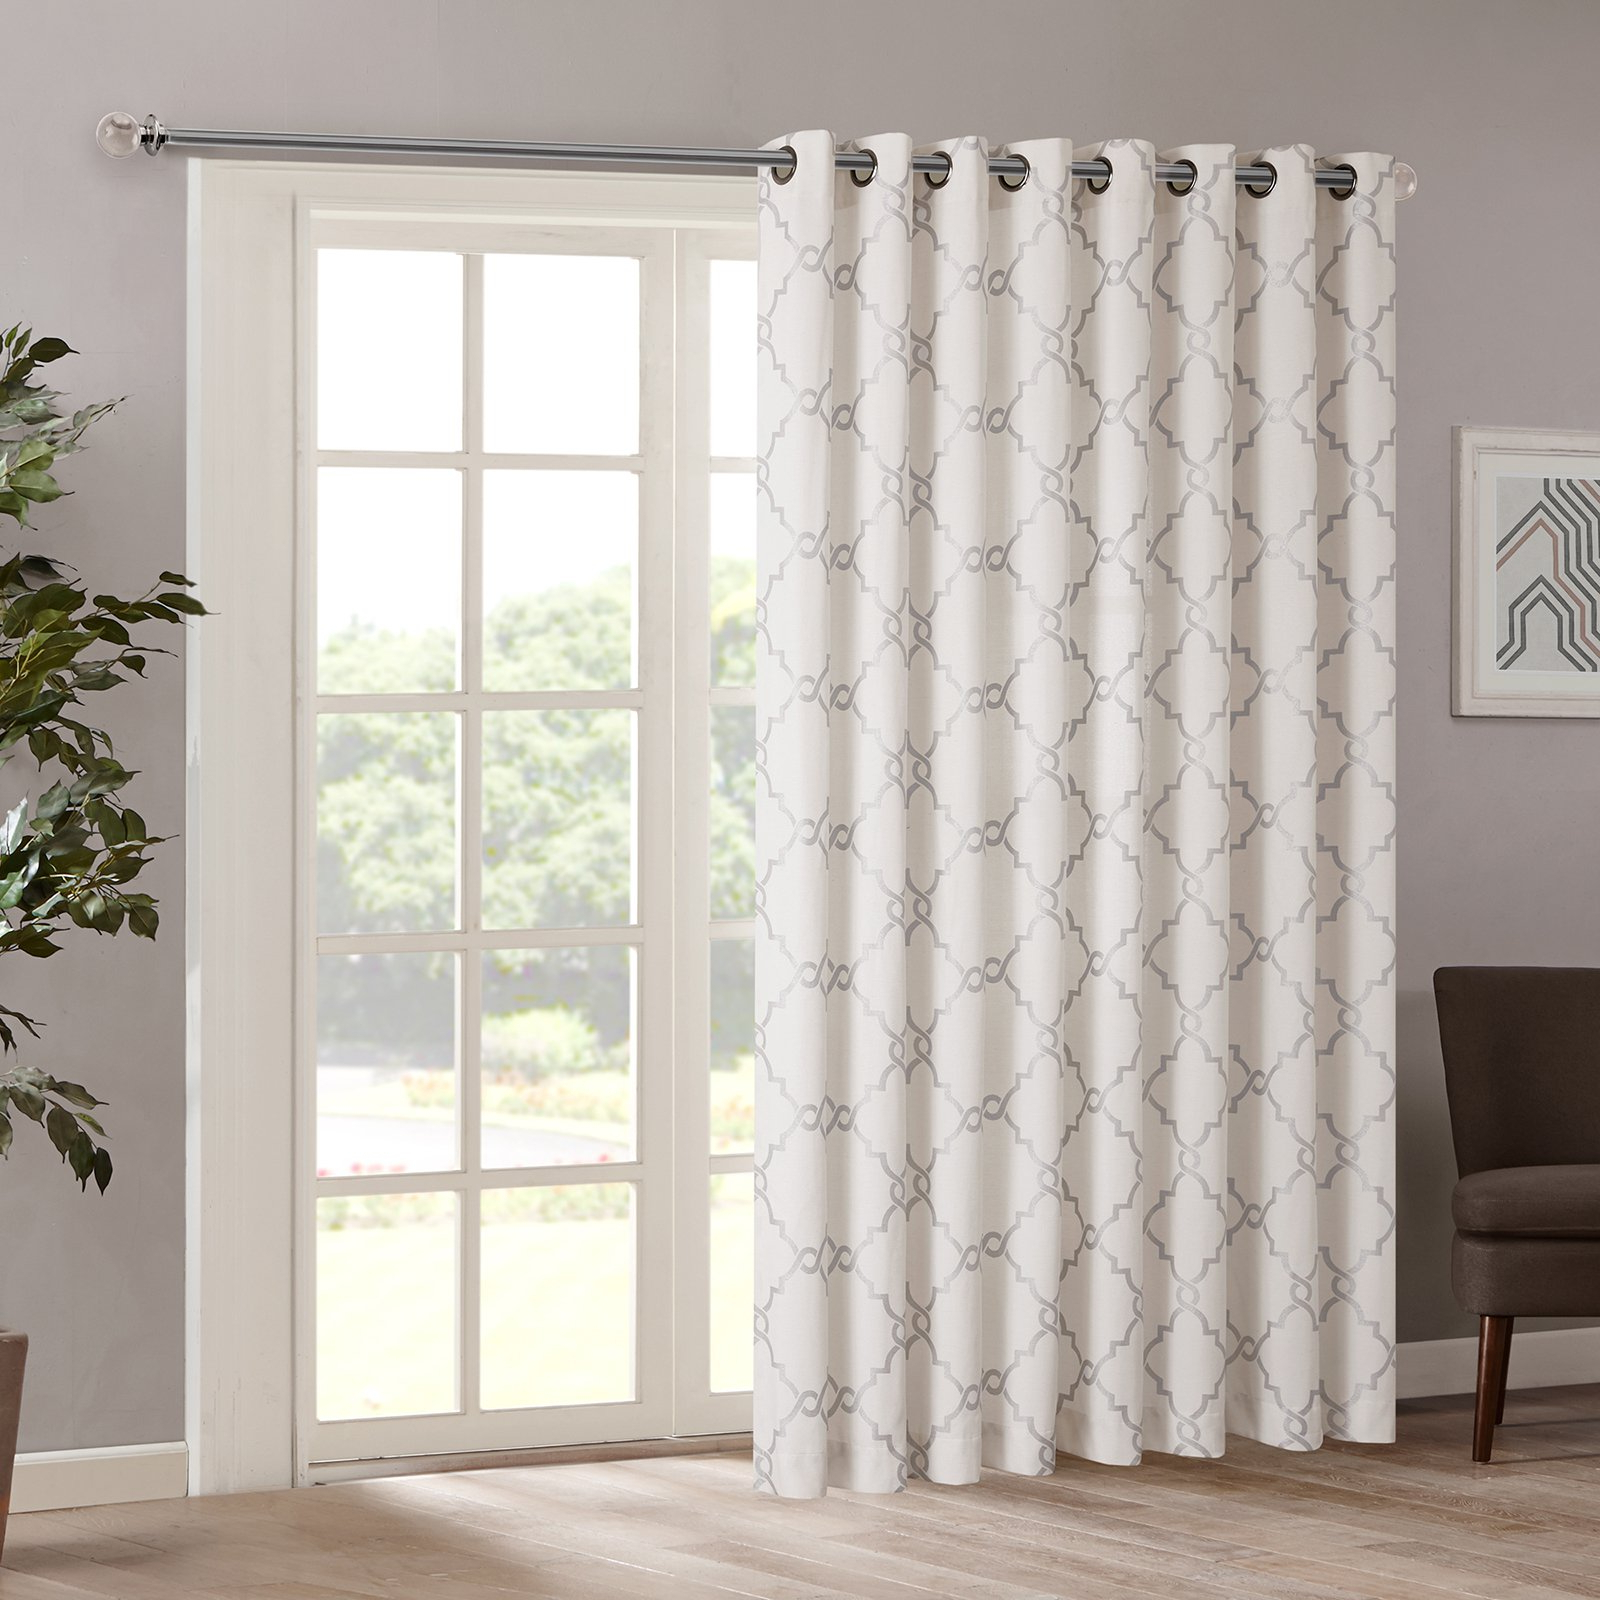 Fashionable Madison Park Saratoga Fretwork Print Patio Door Curtain With Regard To Essentials Almaden Fretwork Printed Grommet Top Curtain Panel Pairs (View 16 of 20)